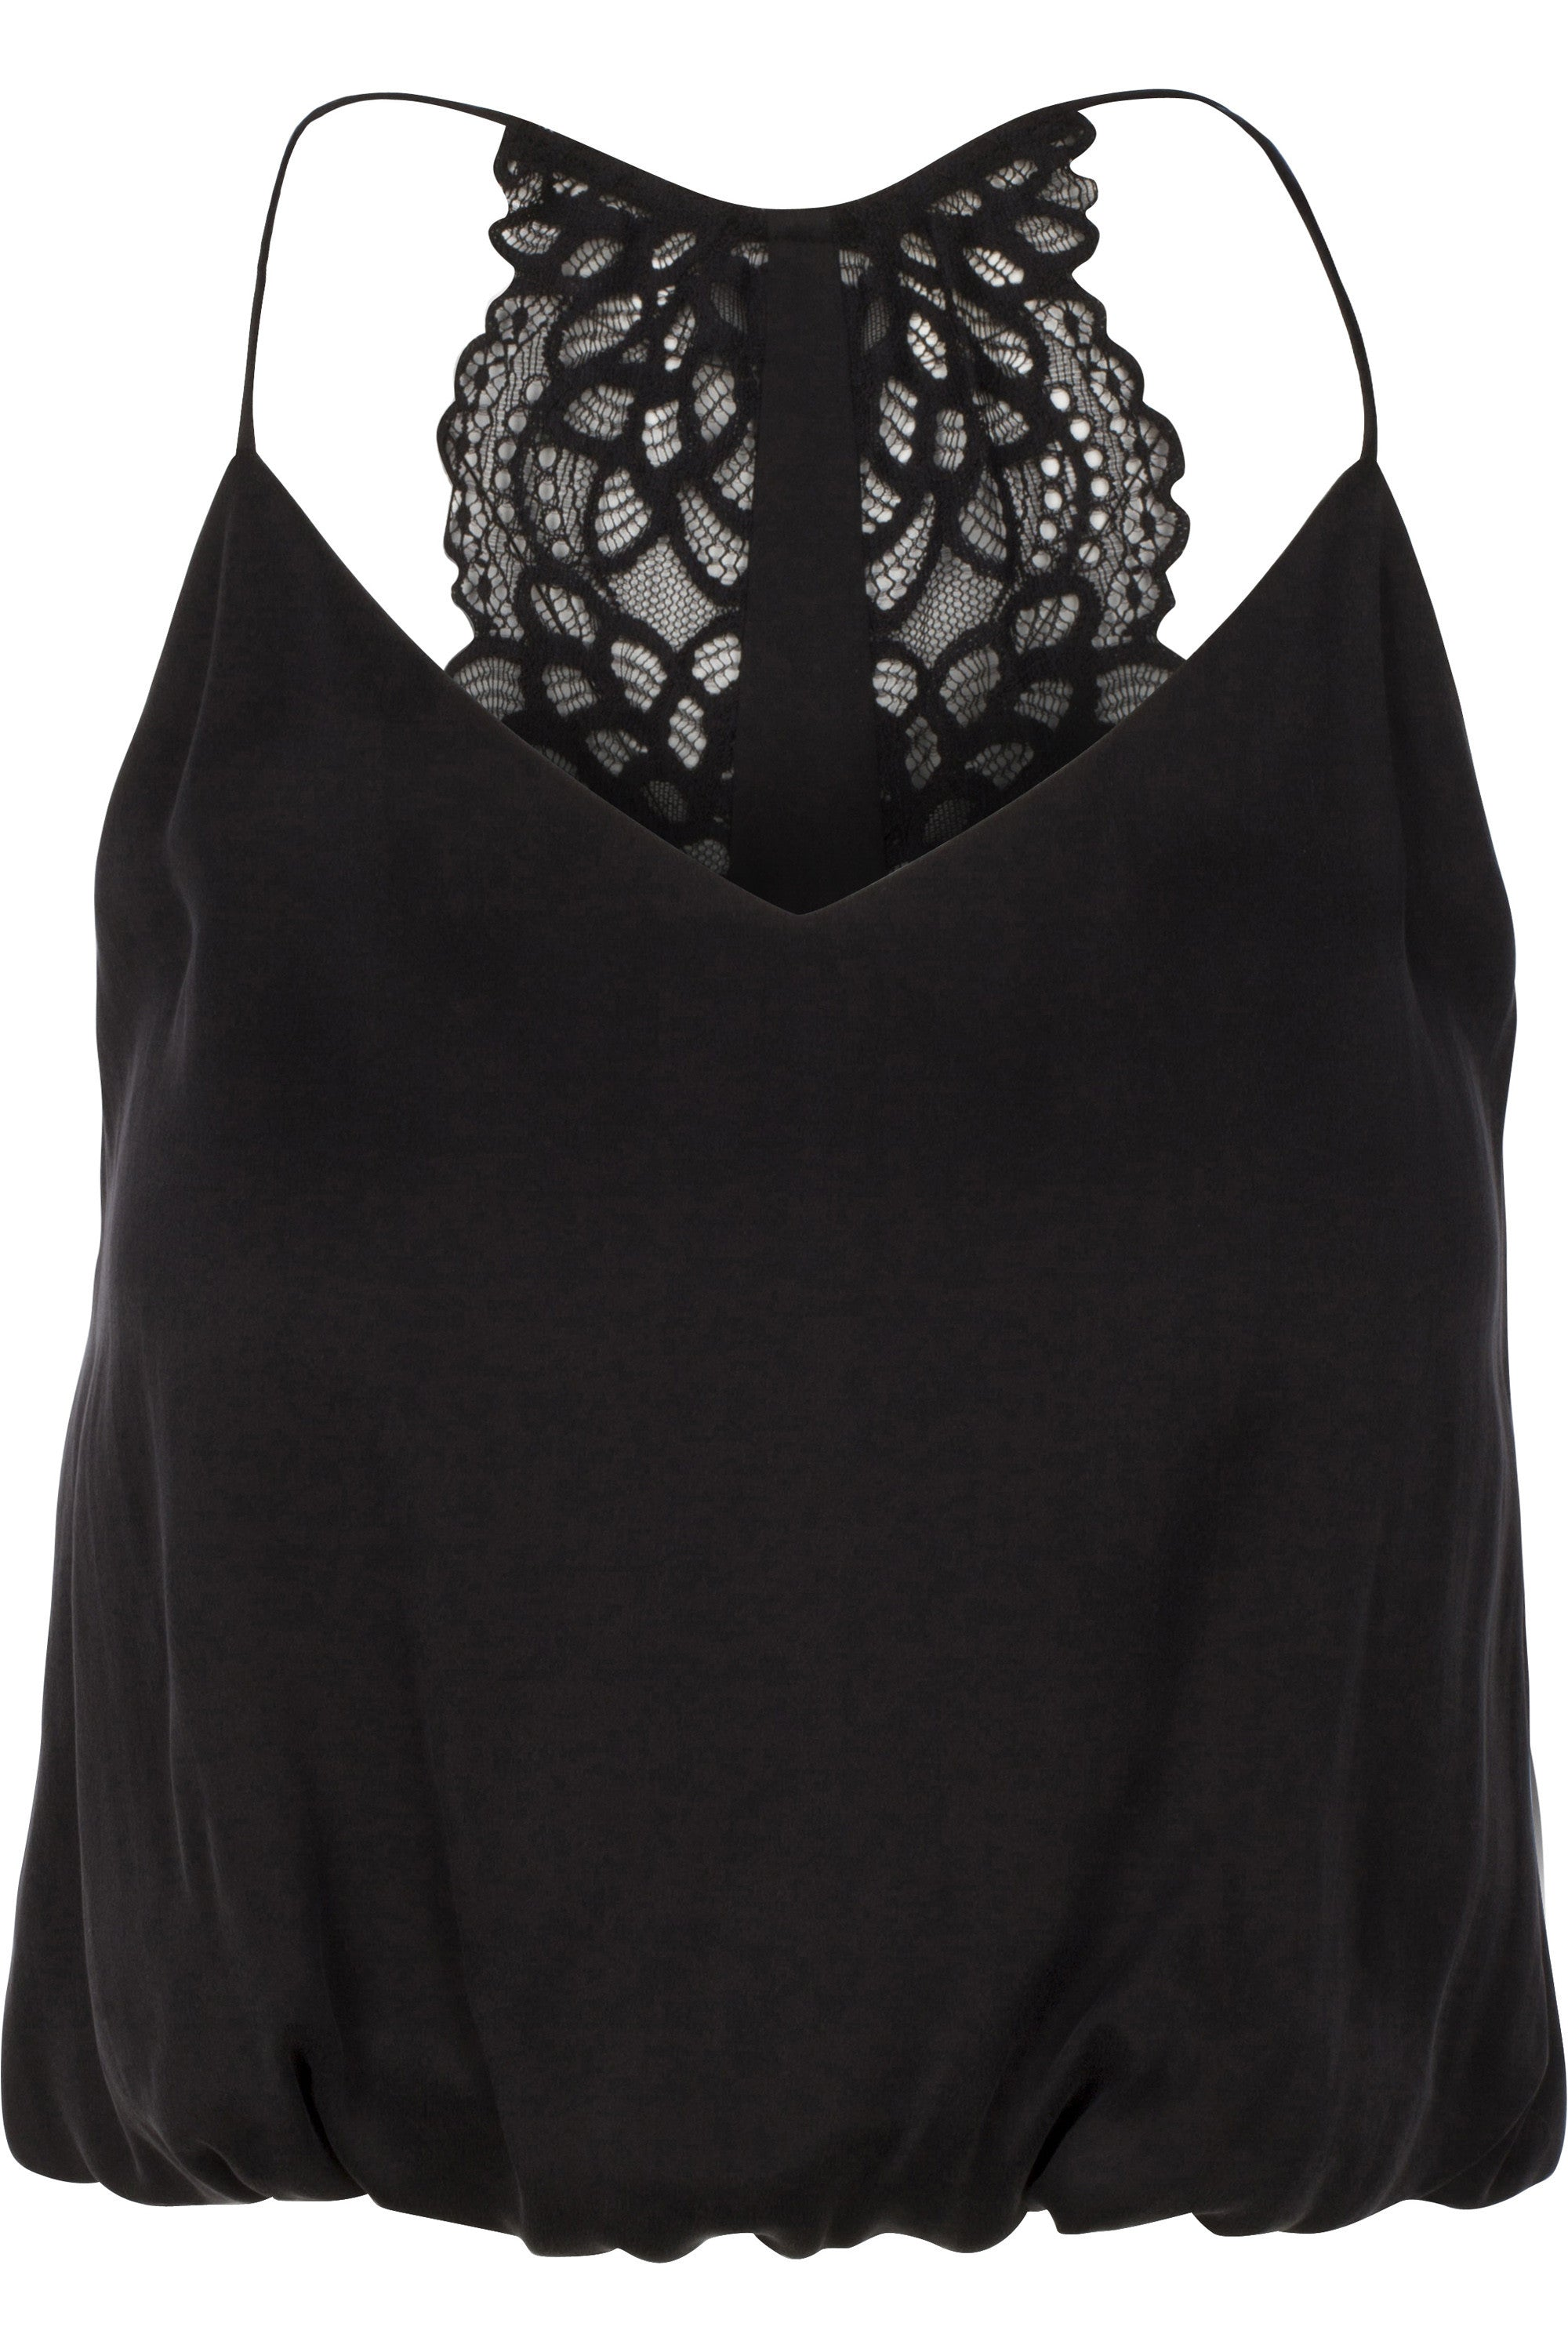 SILK LACE CAMI TOPS by KENDALL + KYLIE